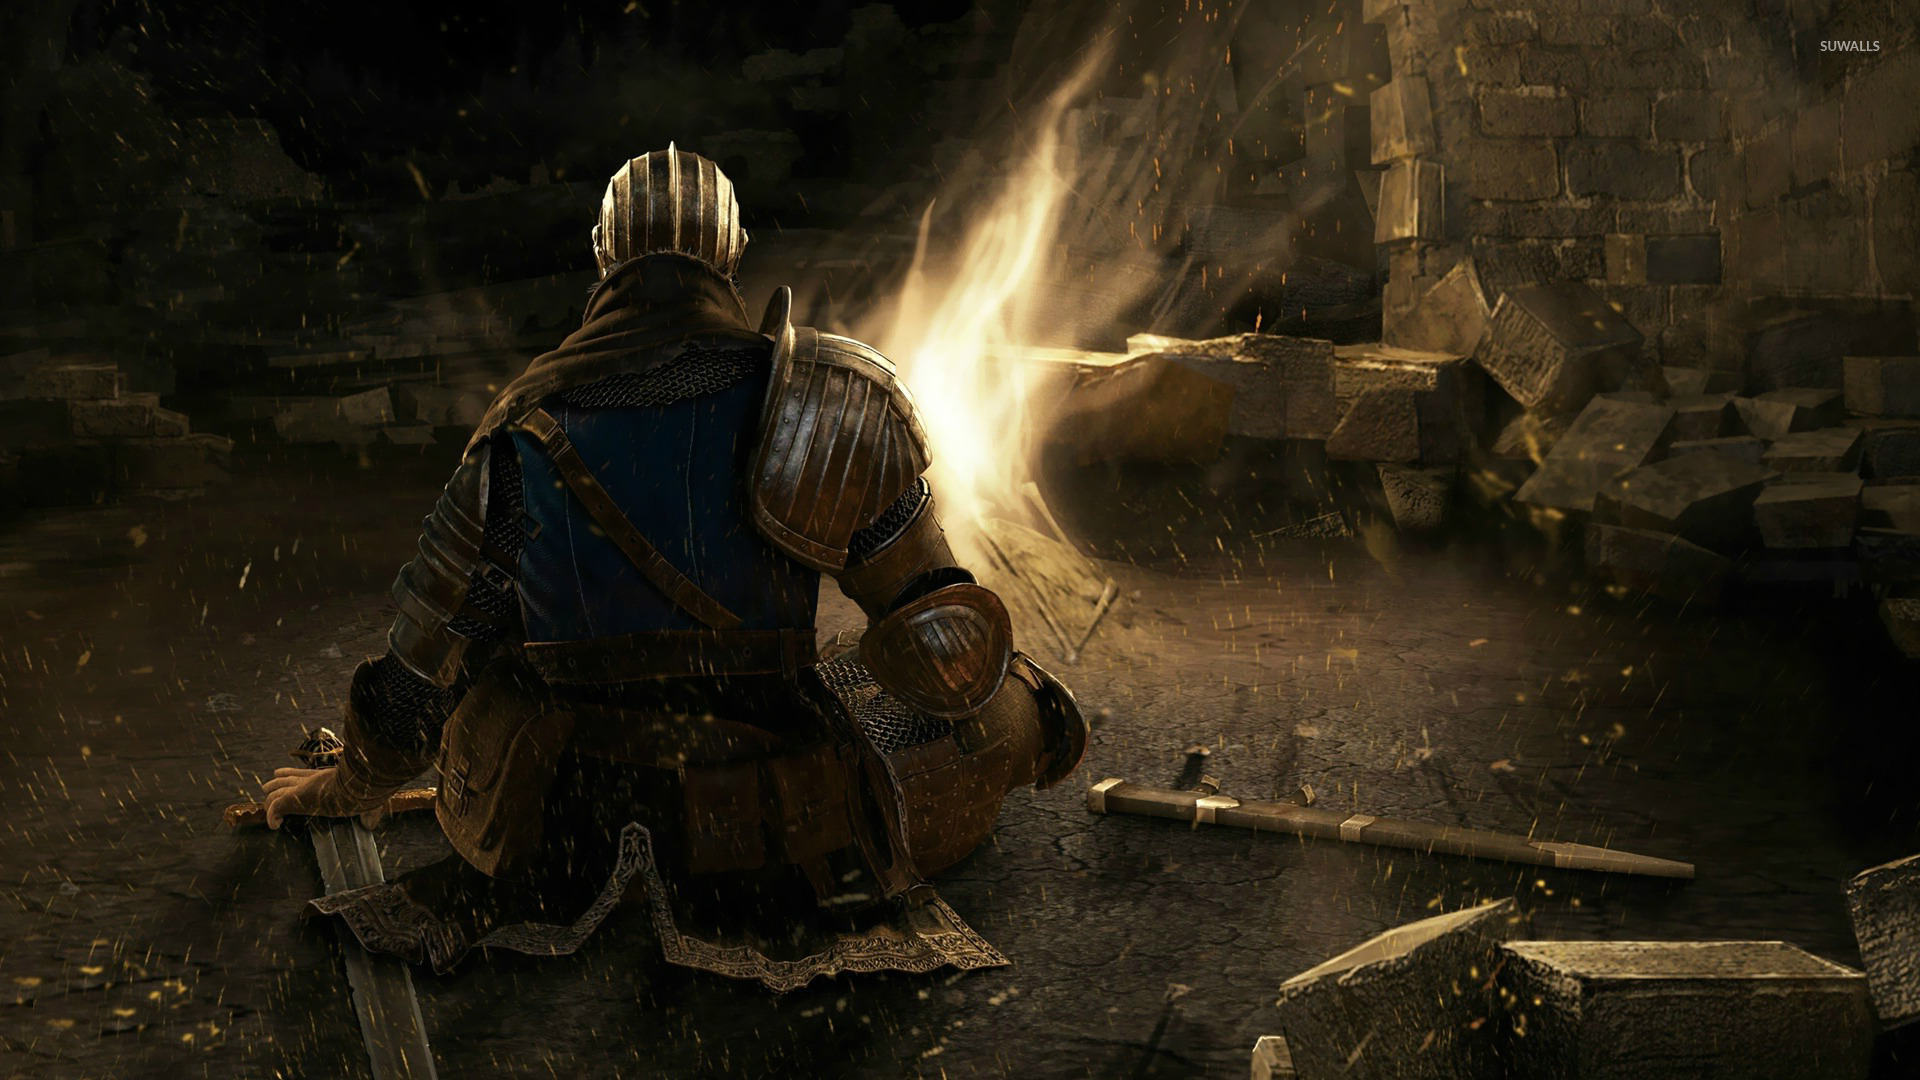 Dark Souls 2 Wallpaper Game Wallpapers 15238